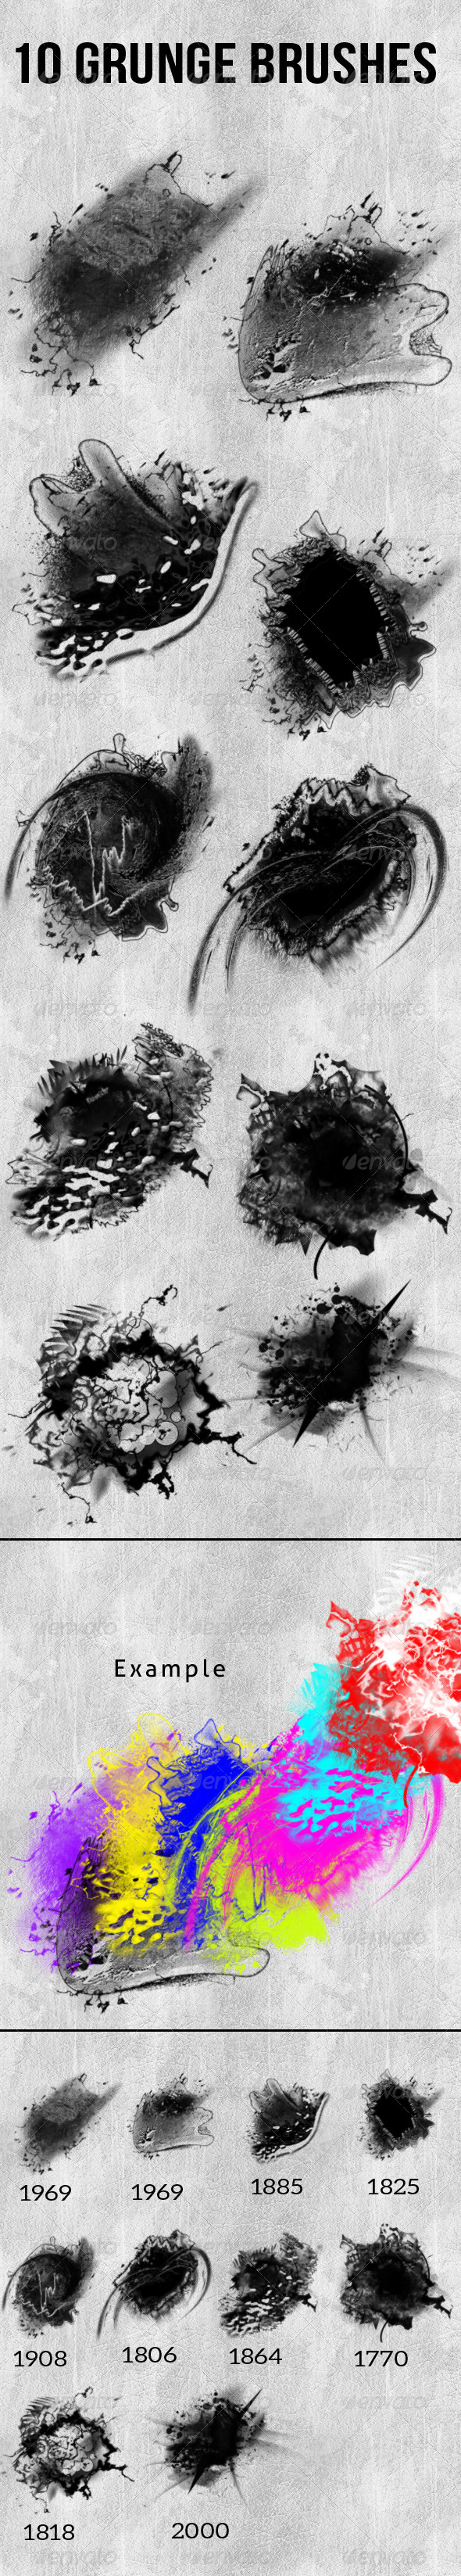 GraphicRiver 10 Grunge Brushes 7806300